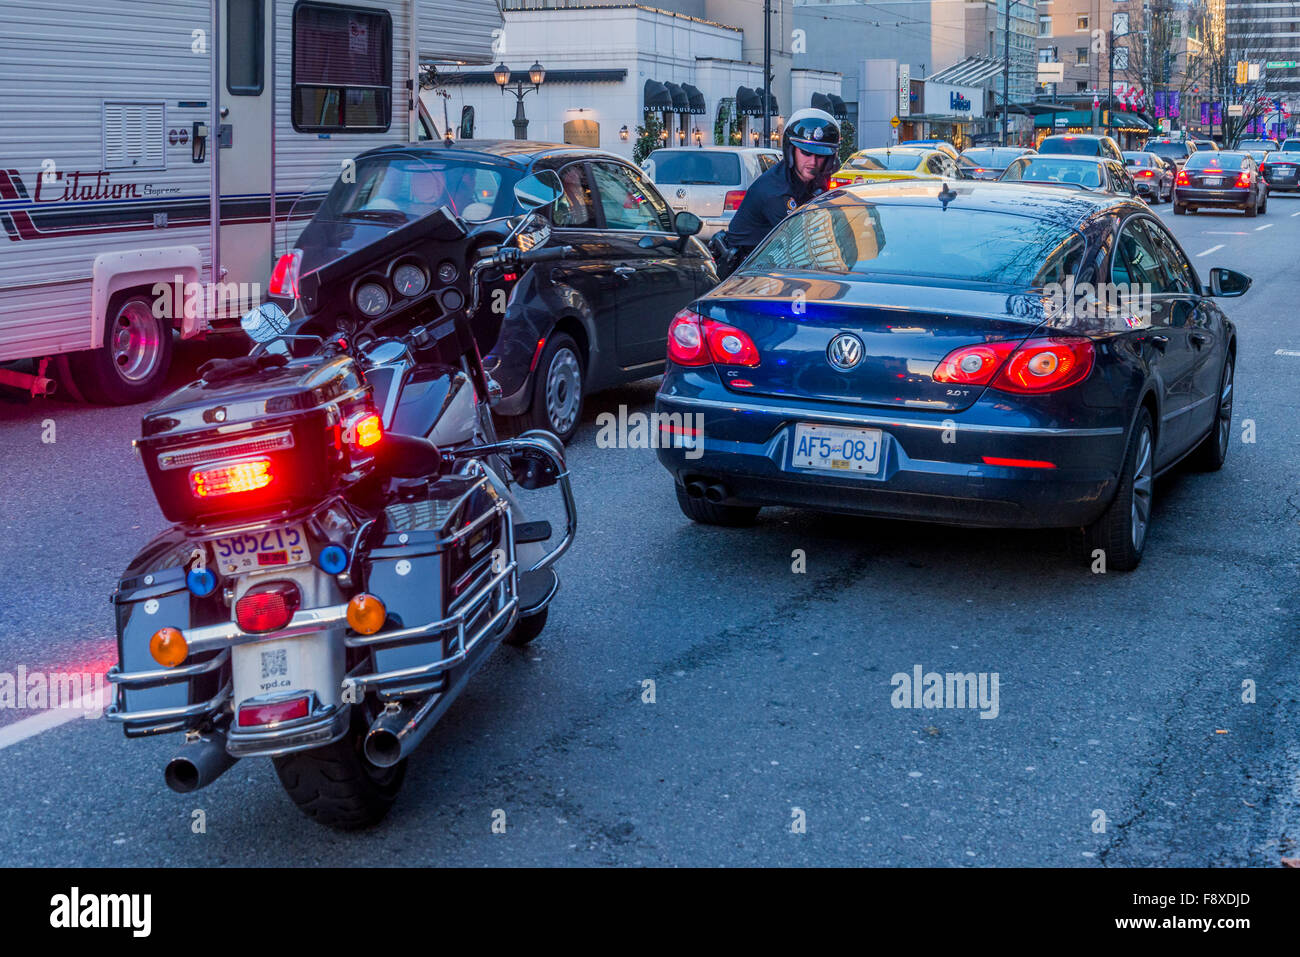 Policeman pulls over car, Vancouver, British Columbia, Canada, - Stock Image